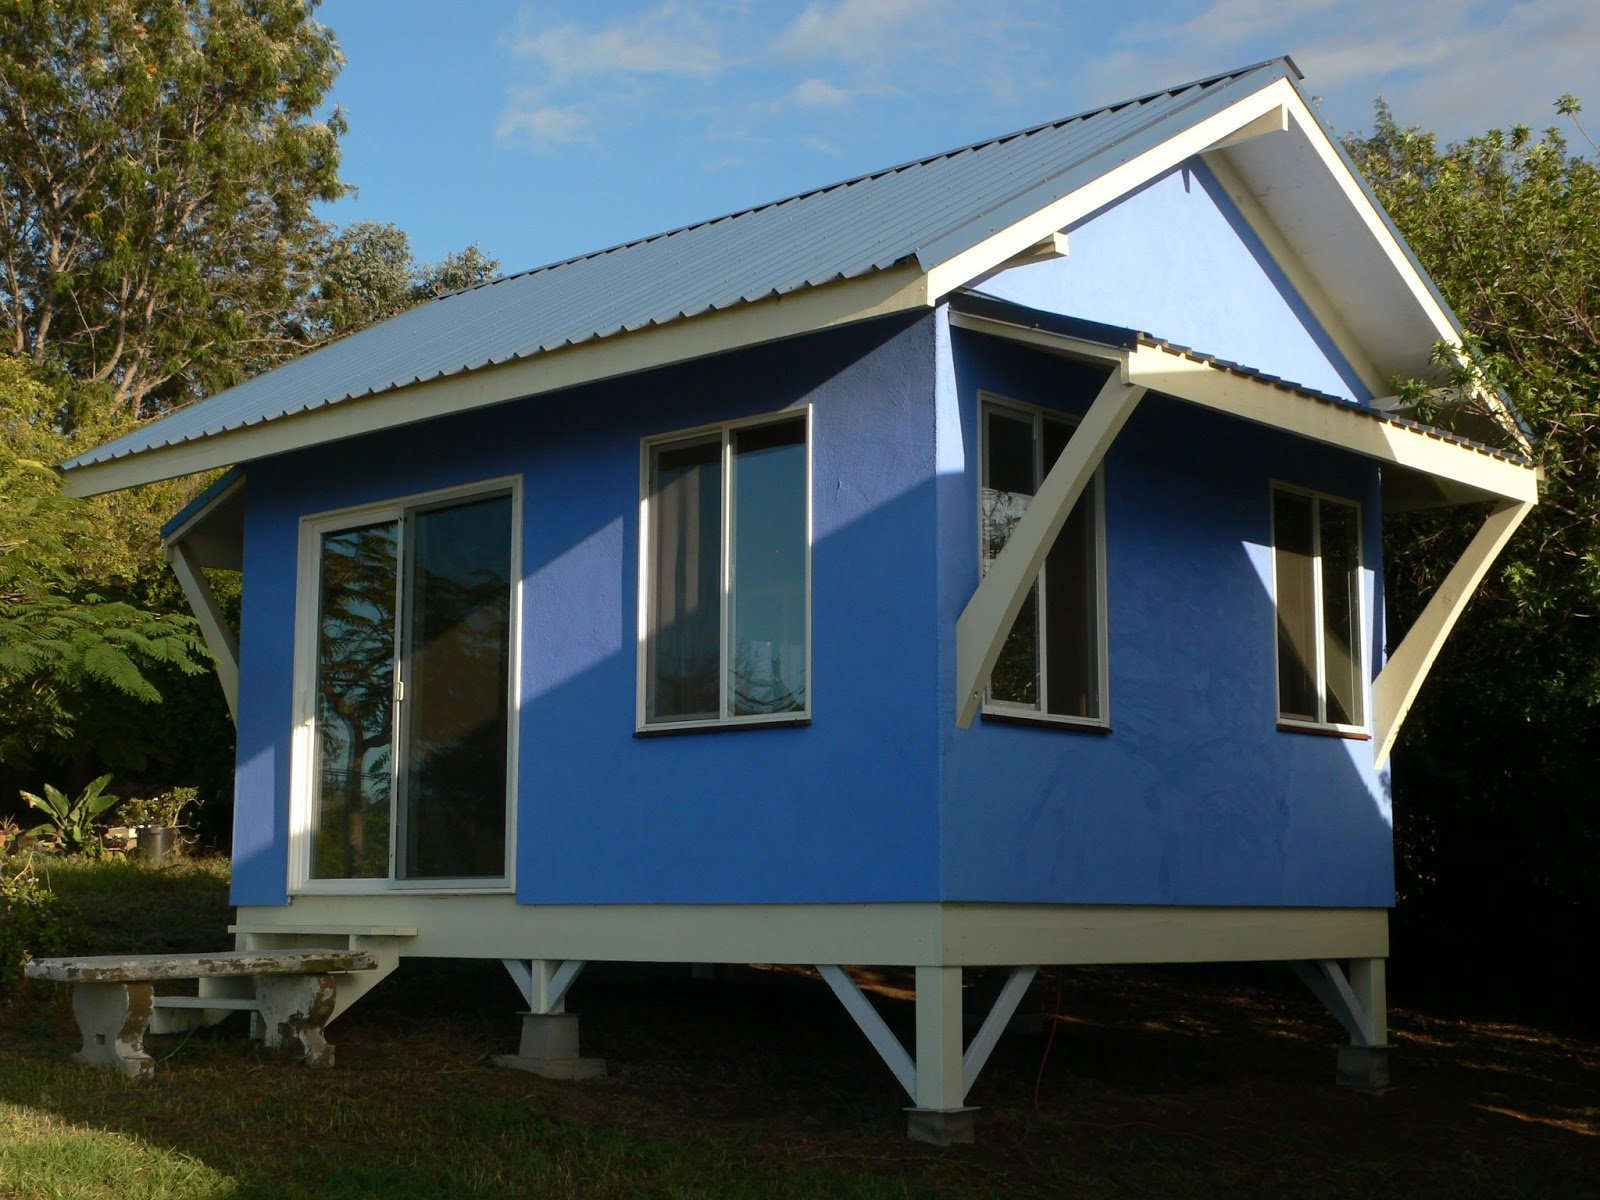 50 photos of small but beautiful and low cost houses that Low cost home plans to build